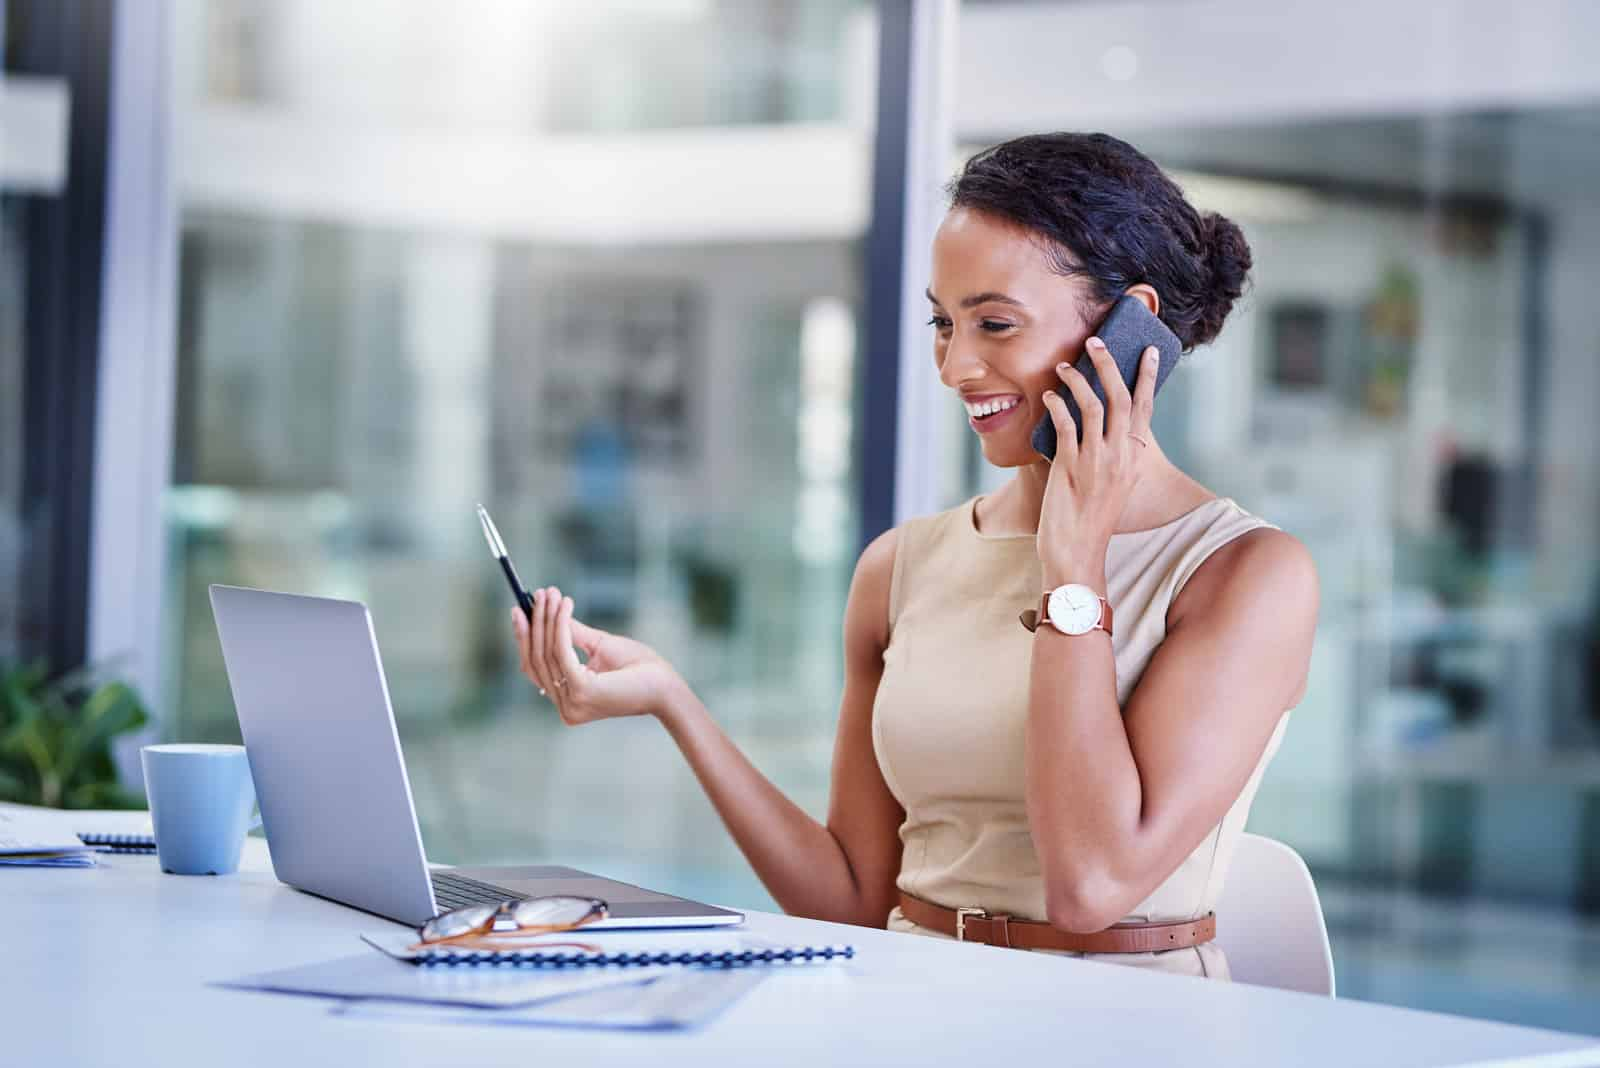 Shot of a young businesswoman using a mobile phone and laptop at her desk in a modern office